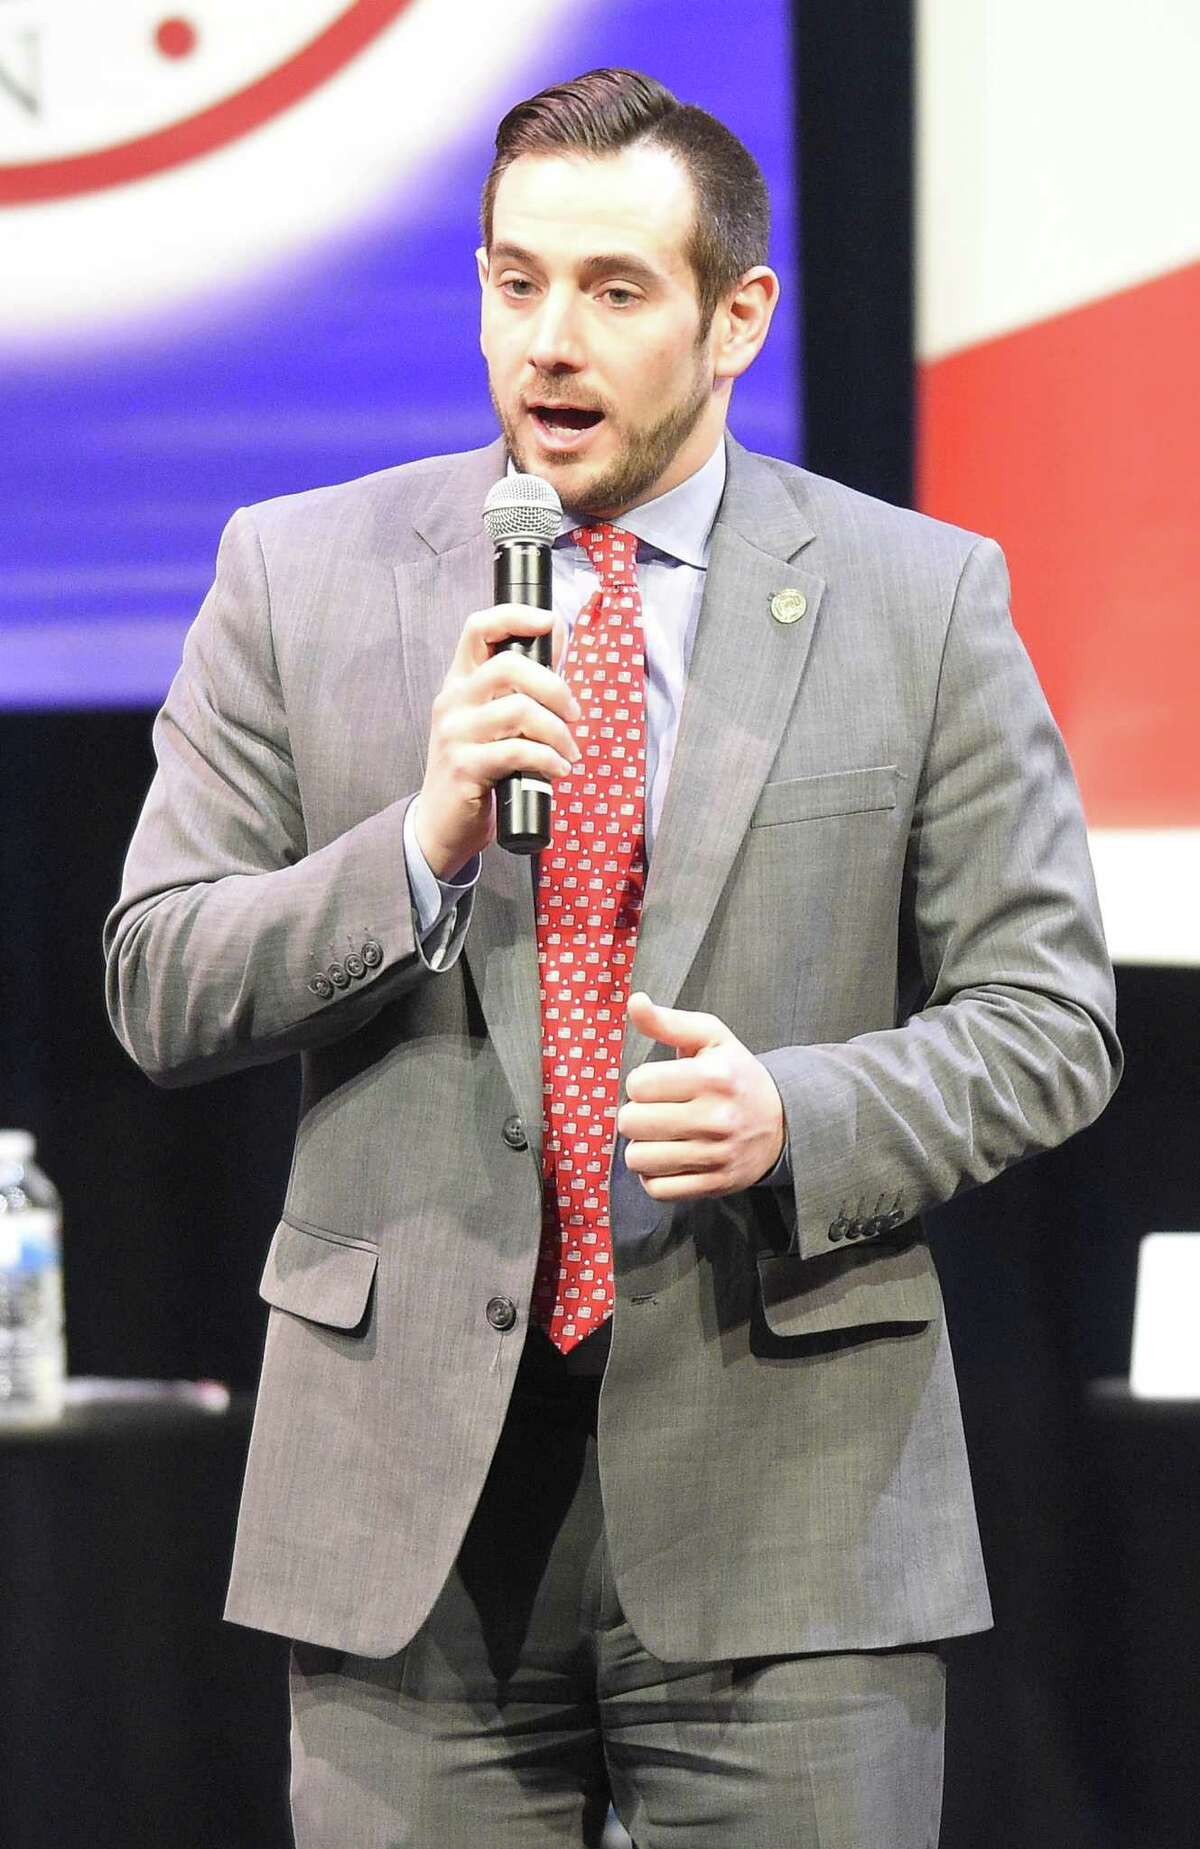 JR Romano, Connecticut Republican Party Chairman welcomed people to the Connecticut 4th District GOP Debate featuring candidates for governor at Saxe Middle School in New Canaan on April 18, 2018.